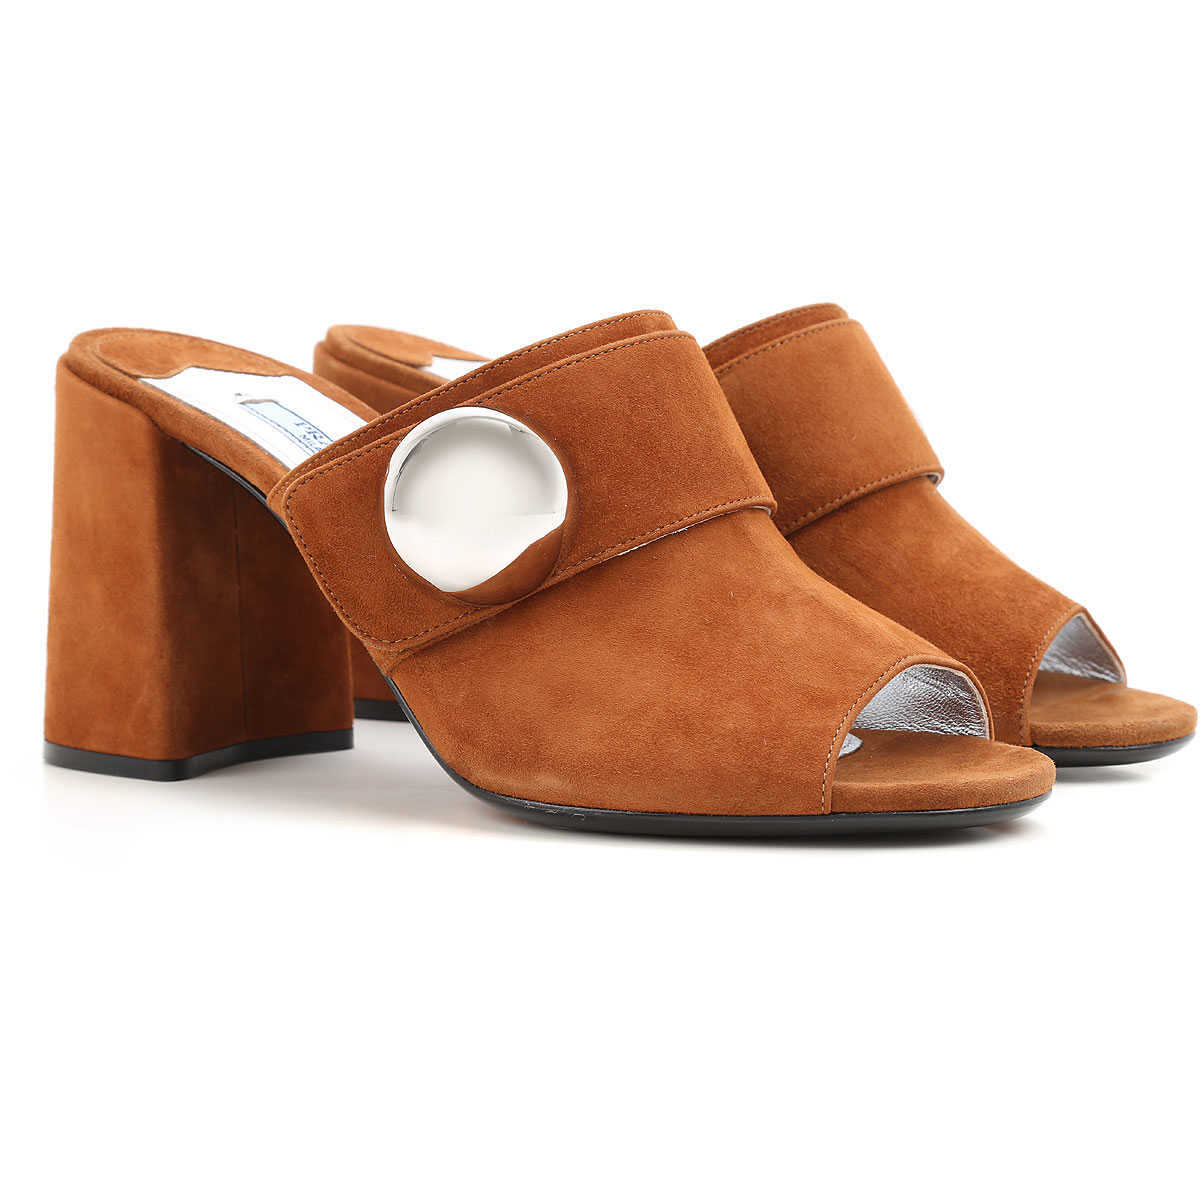 Prada Sandals for Women in Outlet Palisander Canada - GOOFASH - Womens SANDALS